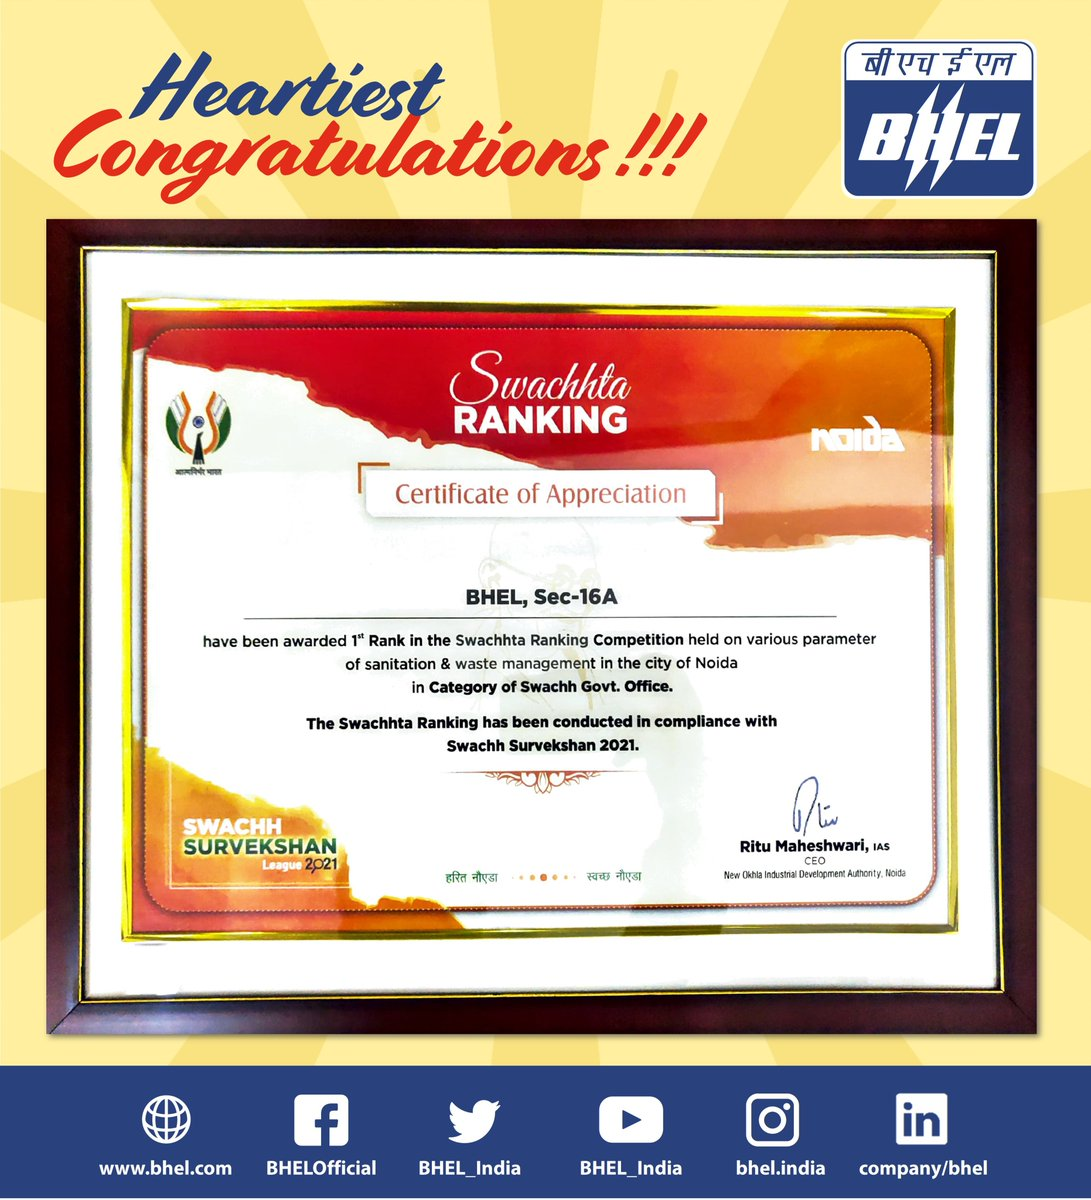 #BHEL office at Sector 16A, Noida wins Swachha Govt. Office Award in Swachhata Ranking Competition @SwachSurvekshan @swachhbharat @SwachhBharatGov #MyCleanIndia #SwachhBharatMission https://t.co/hkw9upubSN